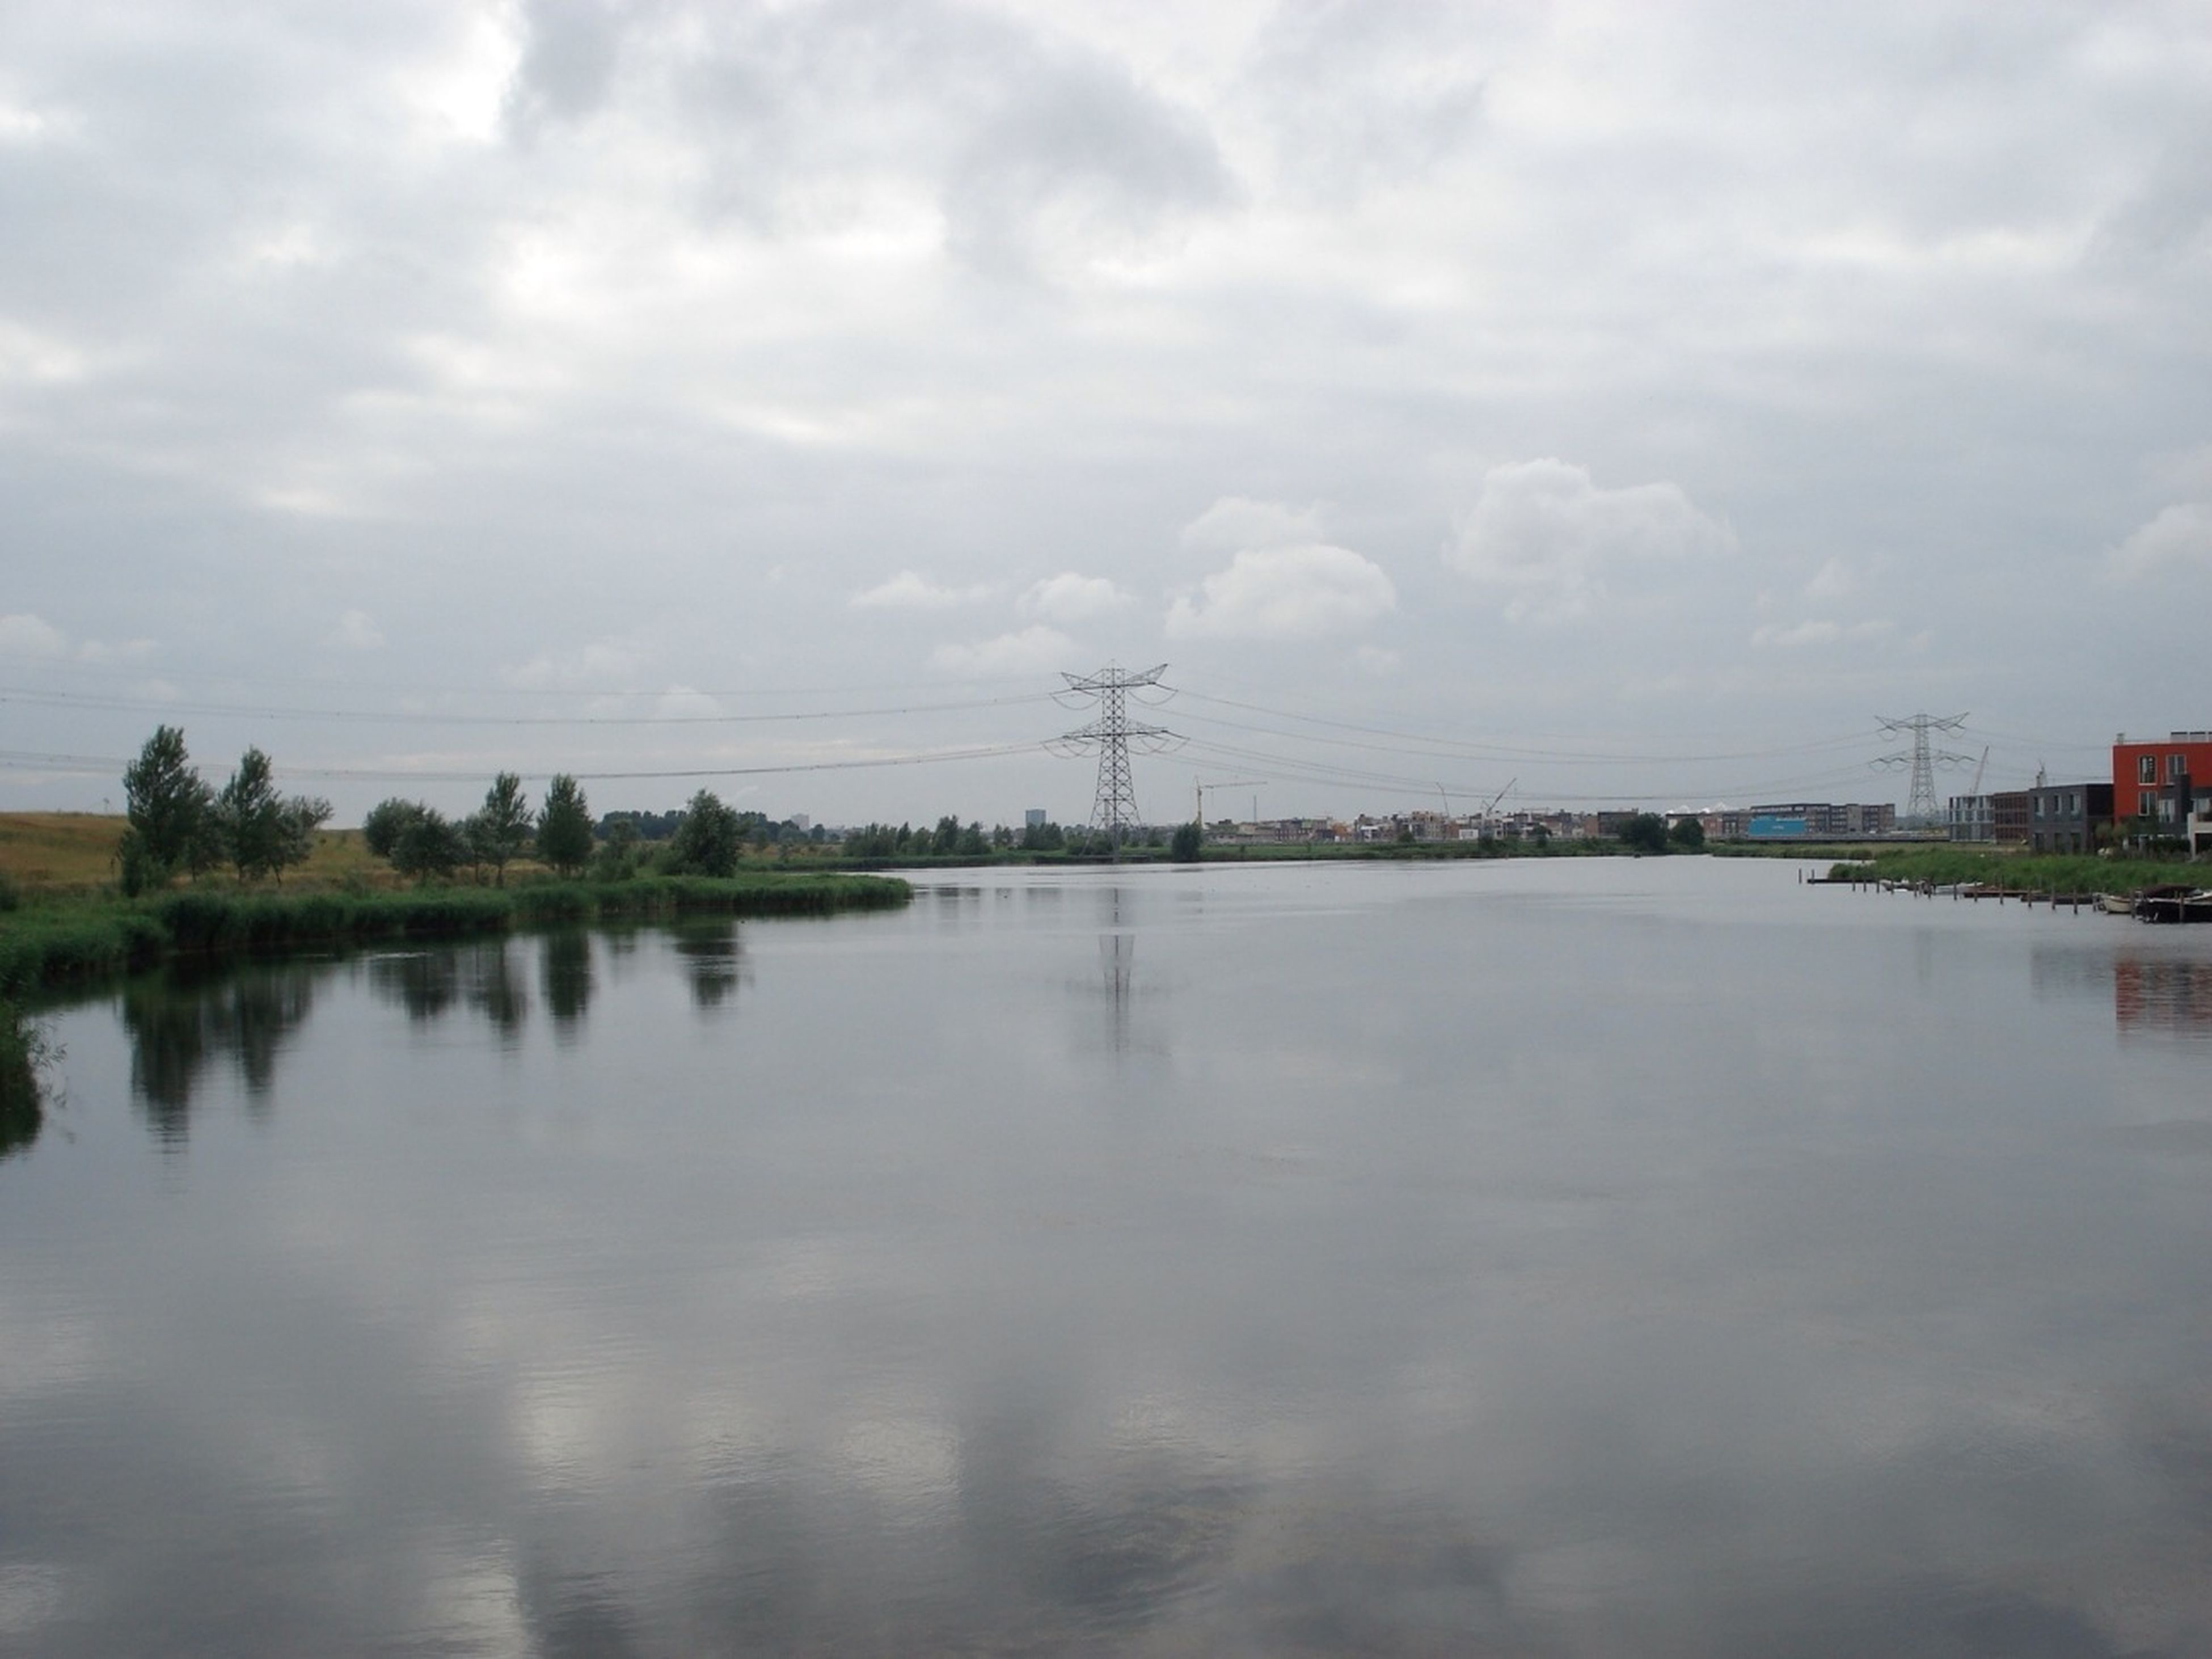 water, sky, cloud - sky, reflection, waterfront, cloudy, tranquility, tranquil scene, lake, scenics, nature, cloud, beauty in nature, weather, river, overcast, day, power line, connection, outdoors